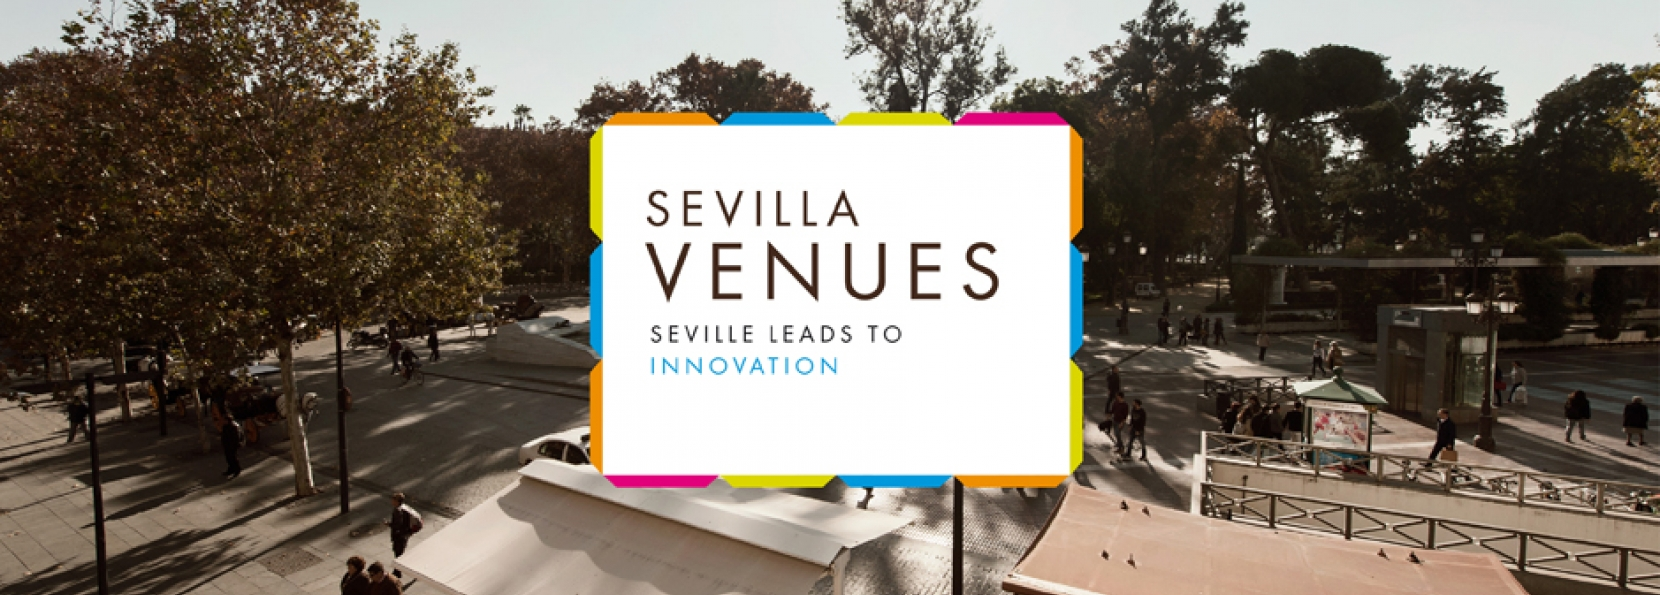 Seville leads to innovation